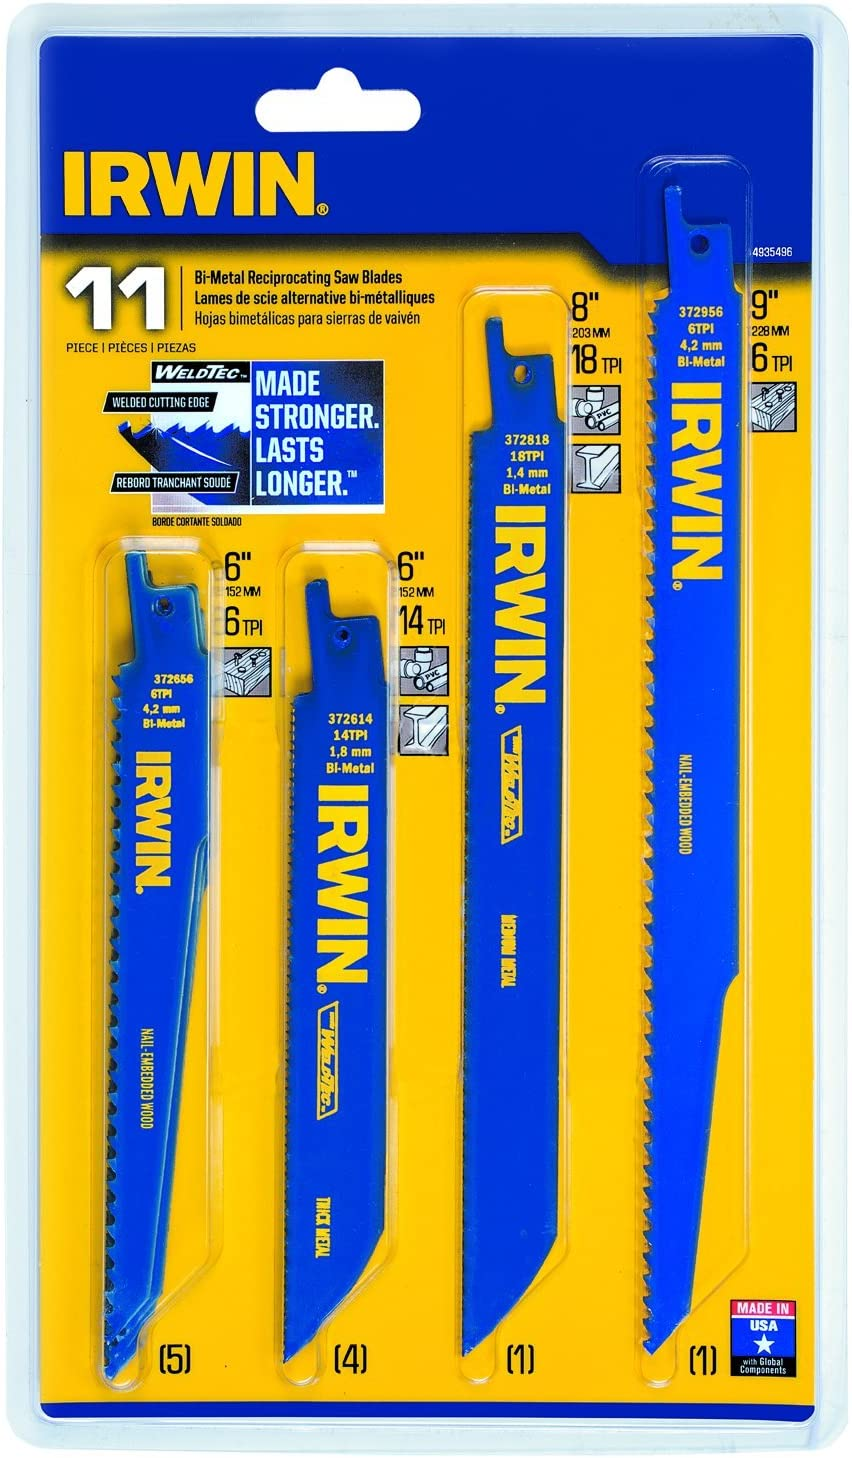 IRWIN Tools Reciprocating Saw Blade Set